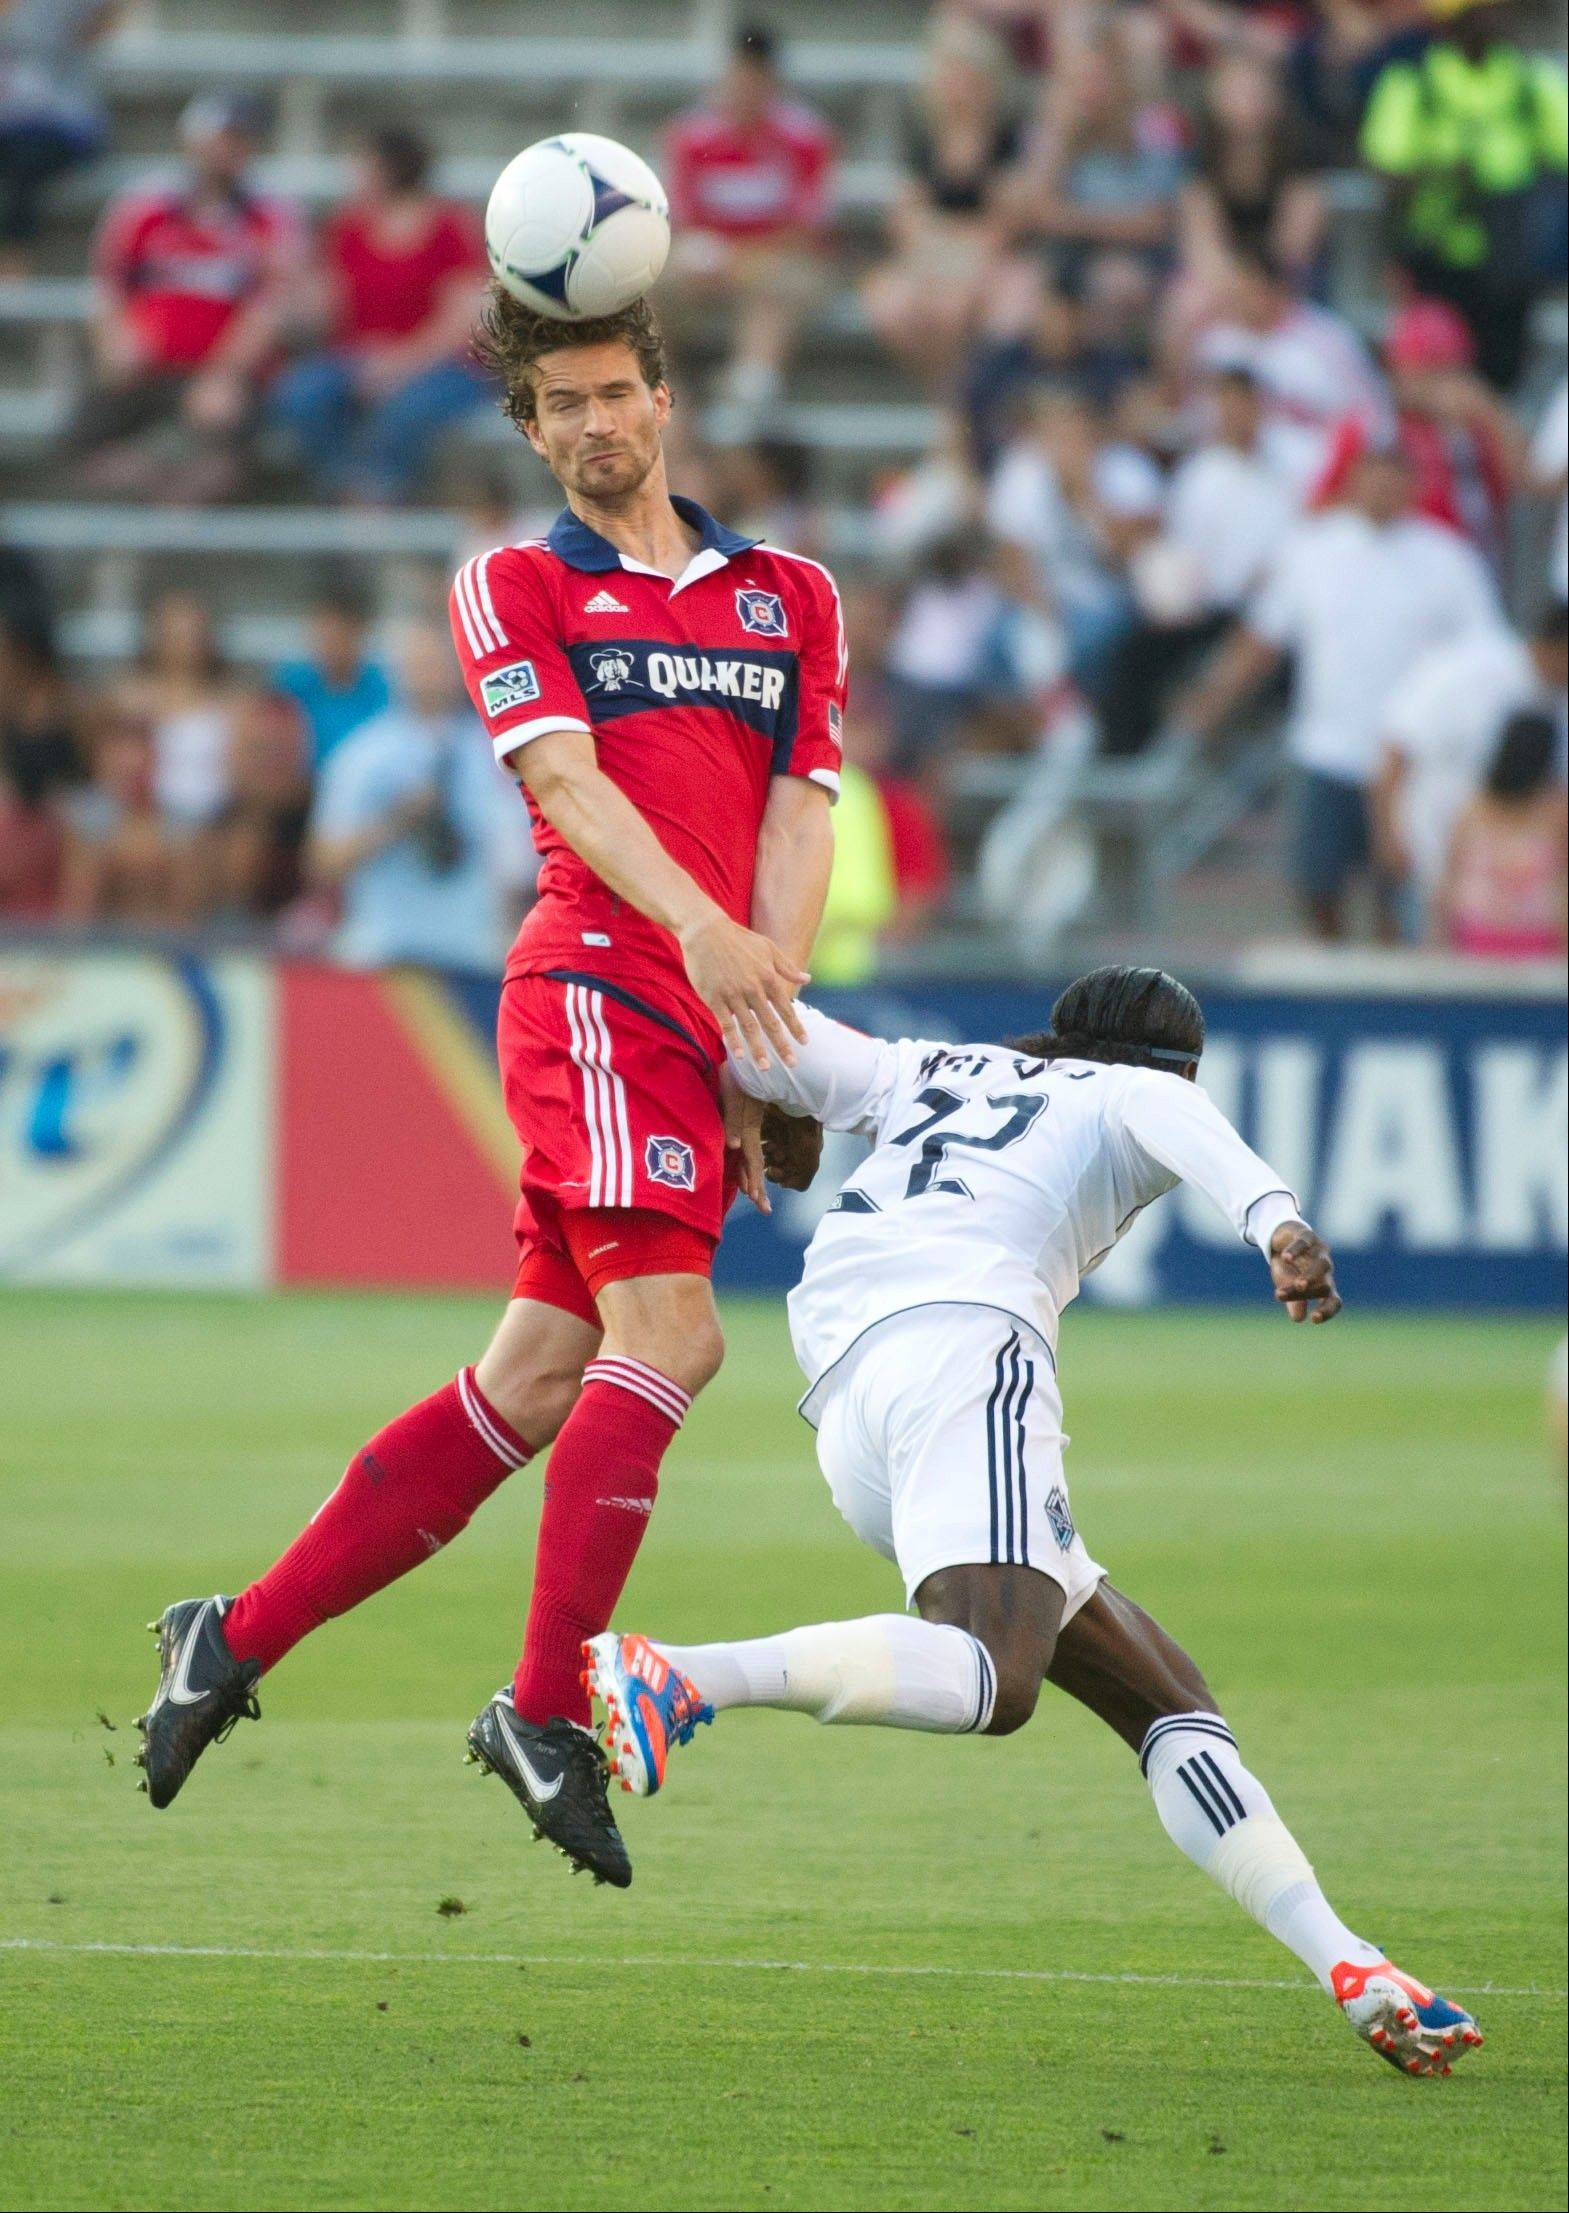 Chicago Fire defender Arne Friedrich, left, announced his retirement. Friedrich, who has been hurt by a bad back this season, was the team's top defender last season.